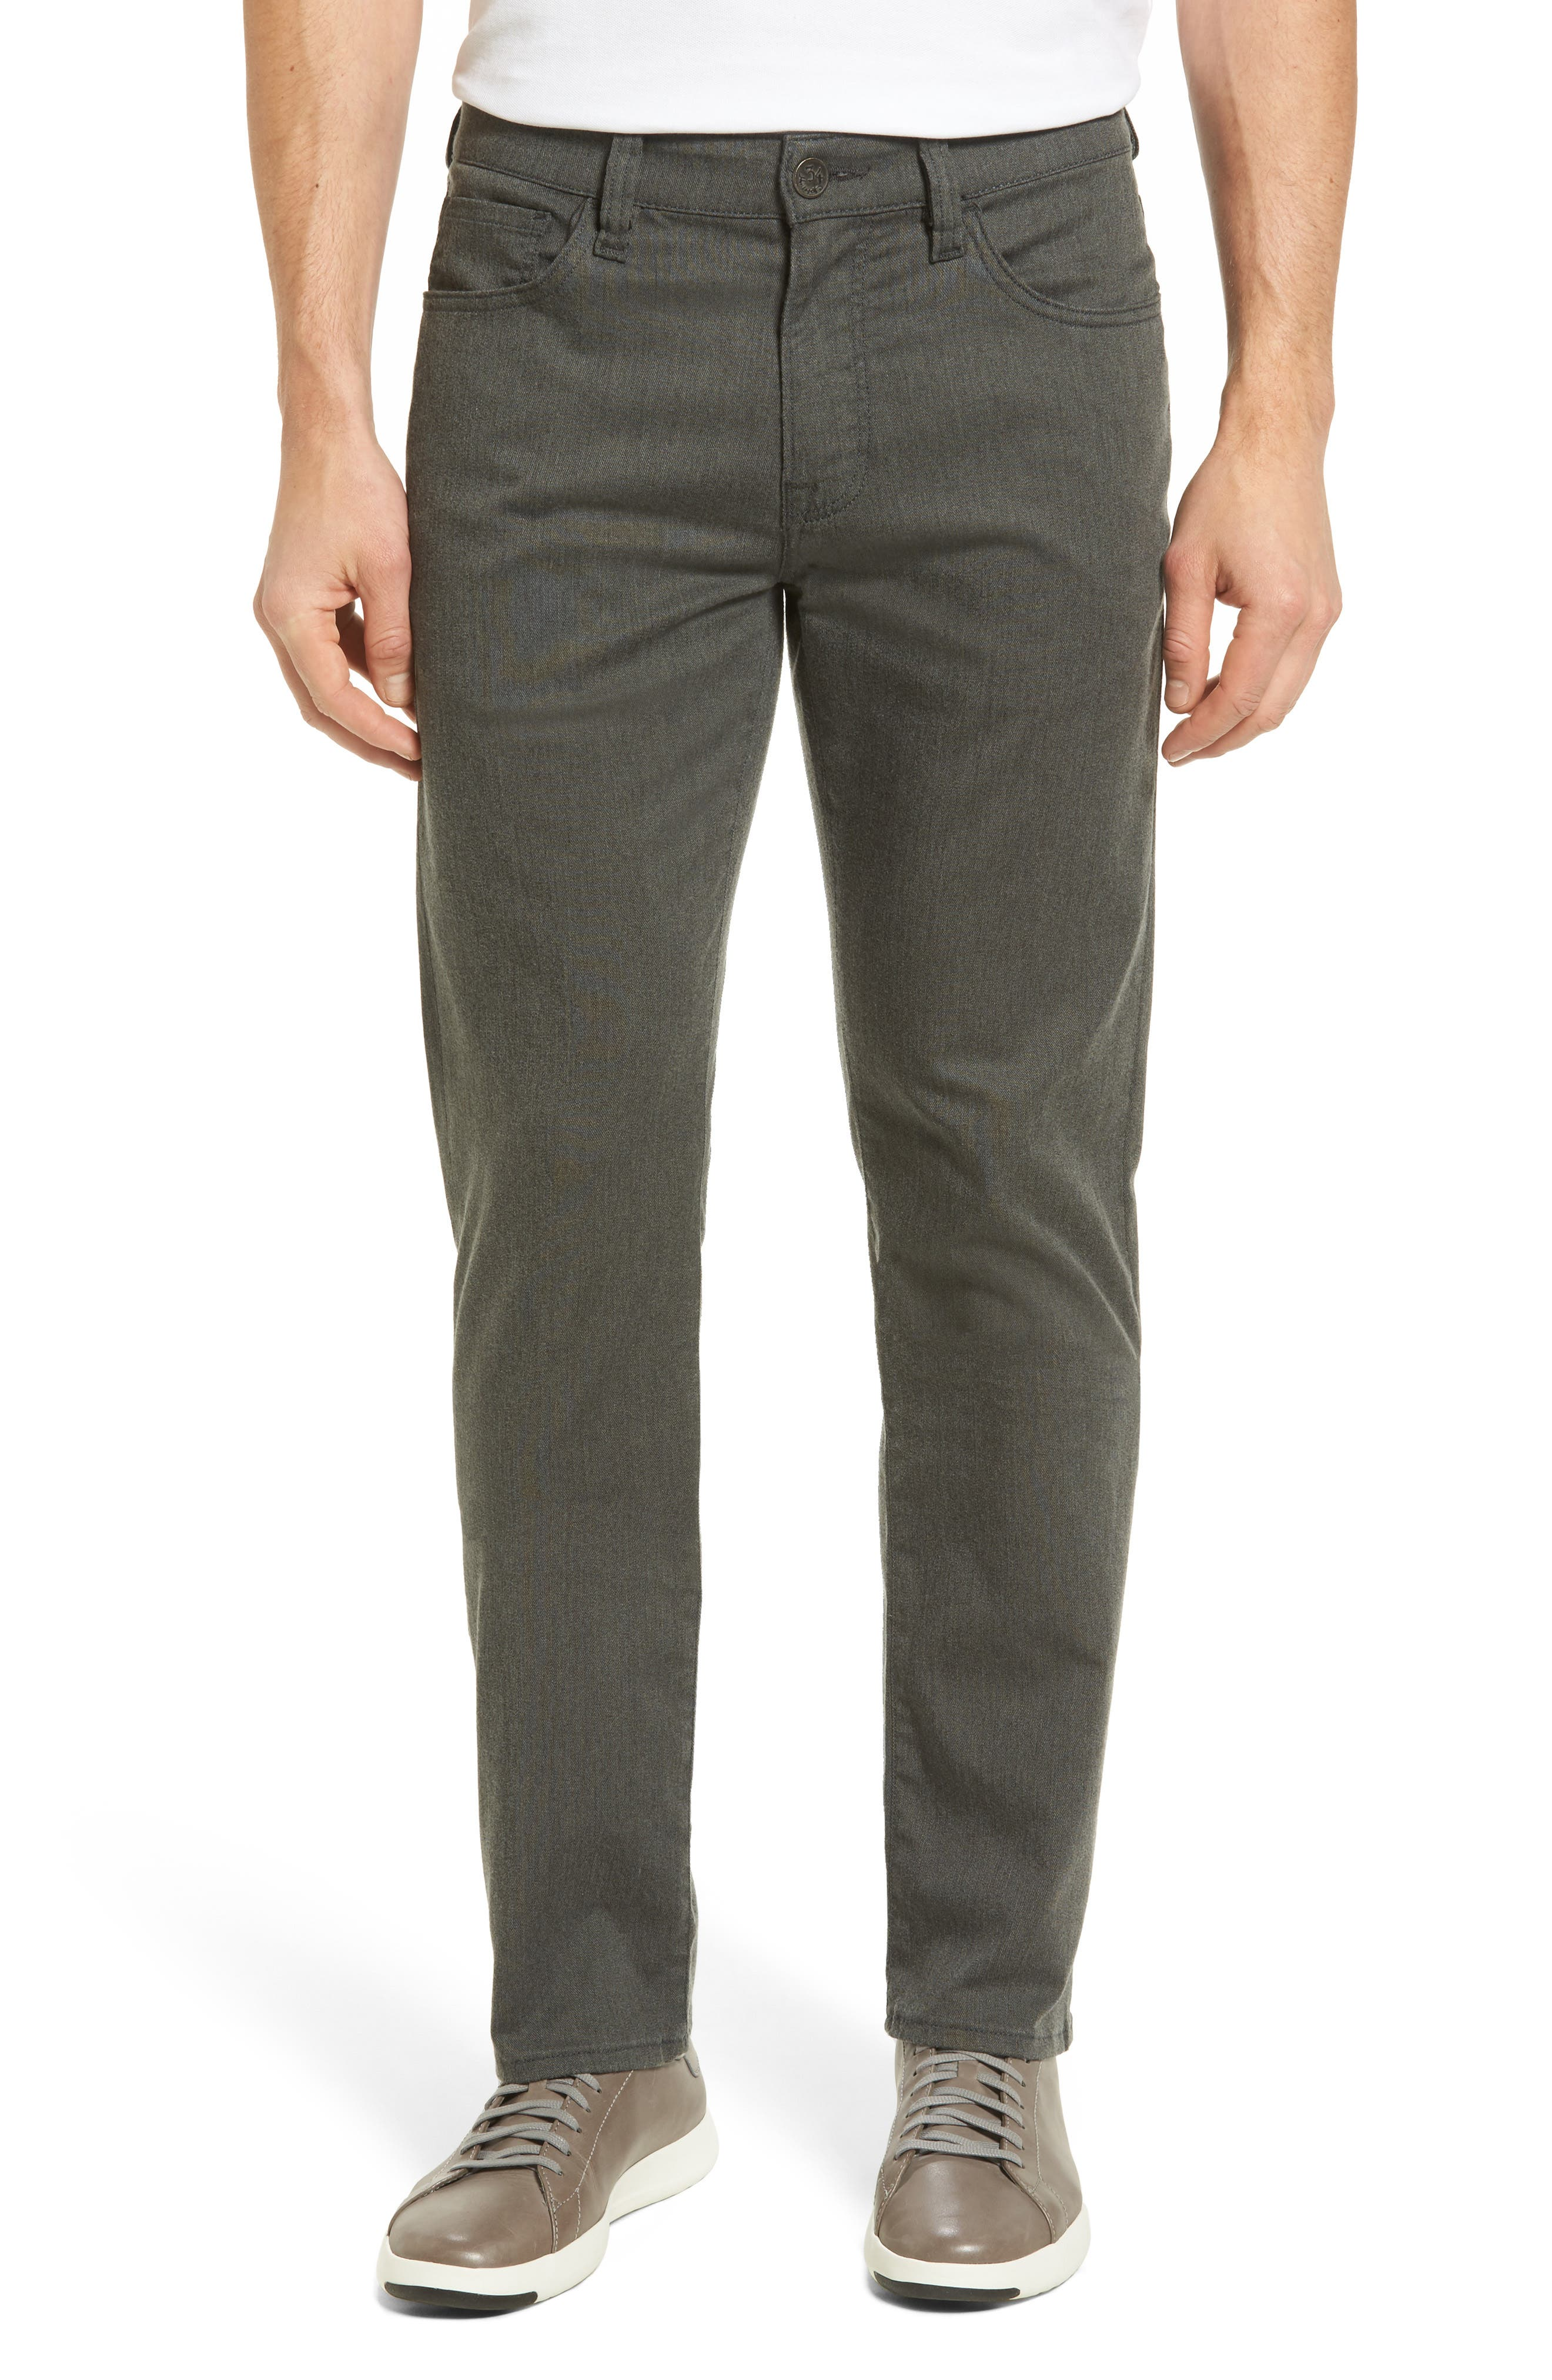 34 Heritage Courage Straight Leg Jeans (Grey Luxe)